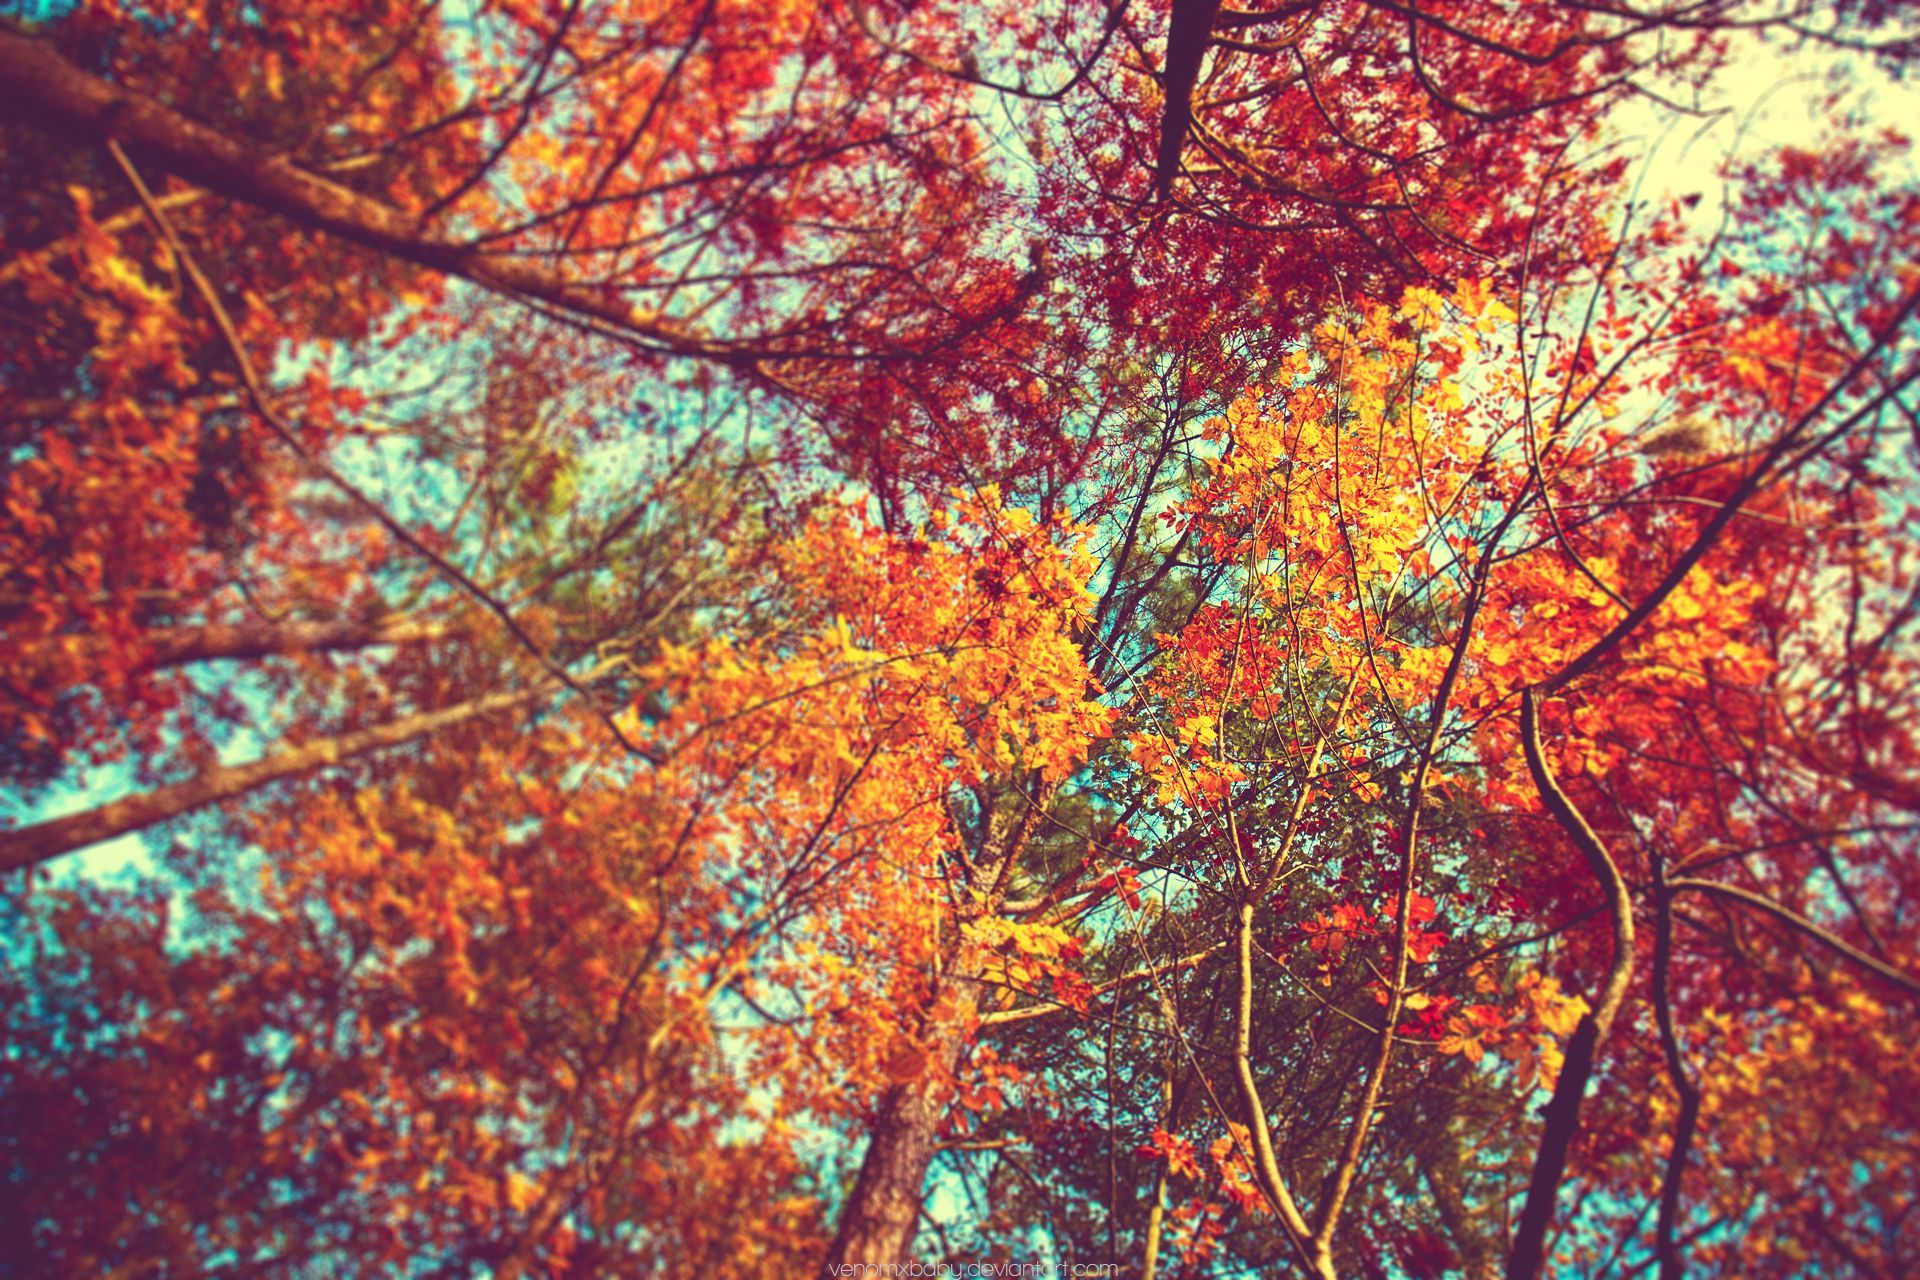 Autumn Tumblr Wallpapers 1080p With High Definition Autumn Aesthetic Wallpapers Top Free Autumn Ae In 2020 Desktop Wallpaper Fall Fall Wallpaper Tumblr Autumn Tumblr